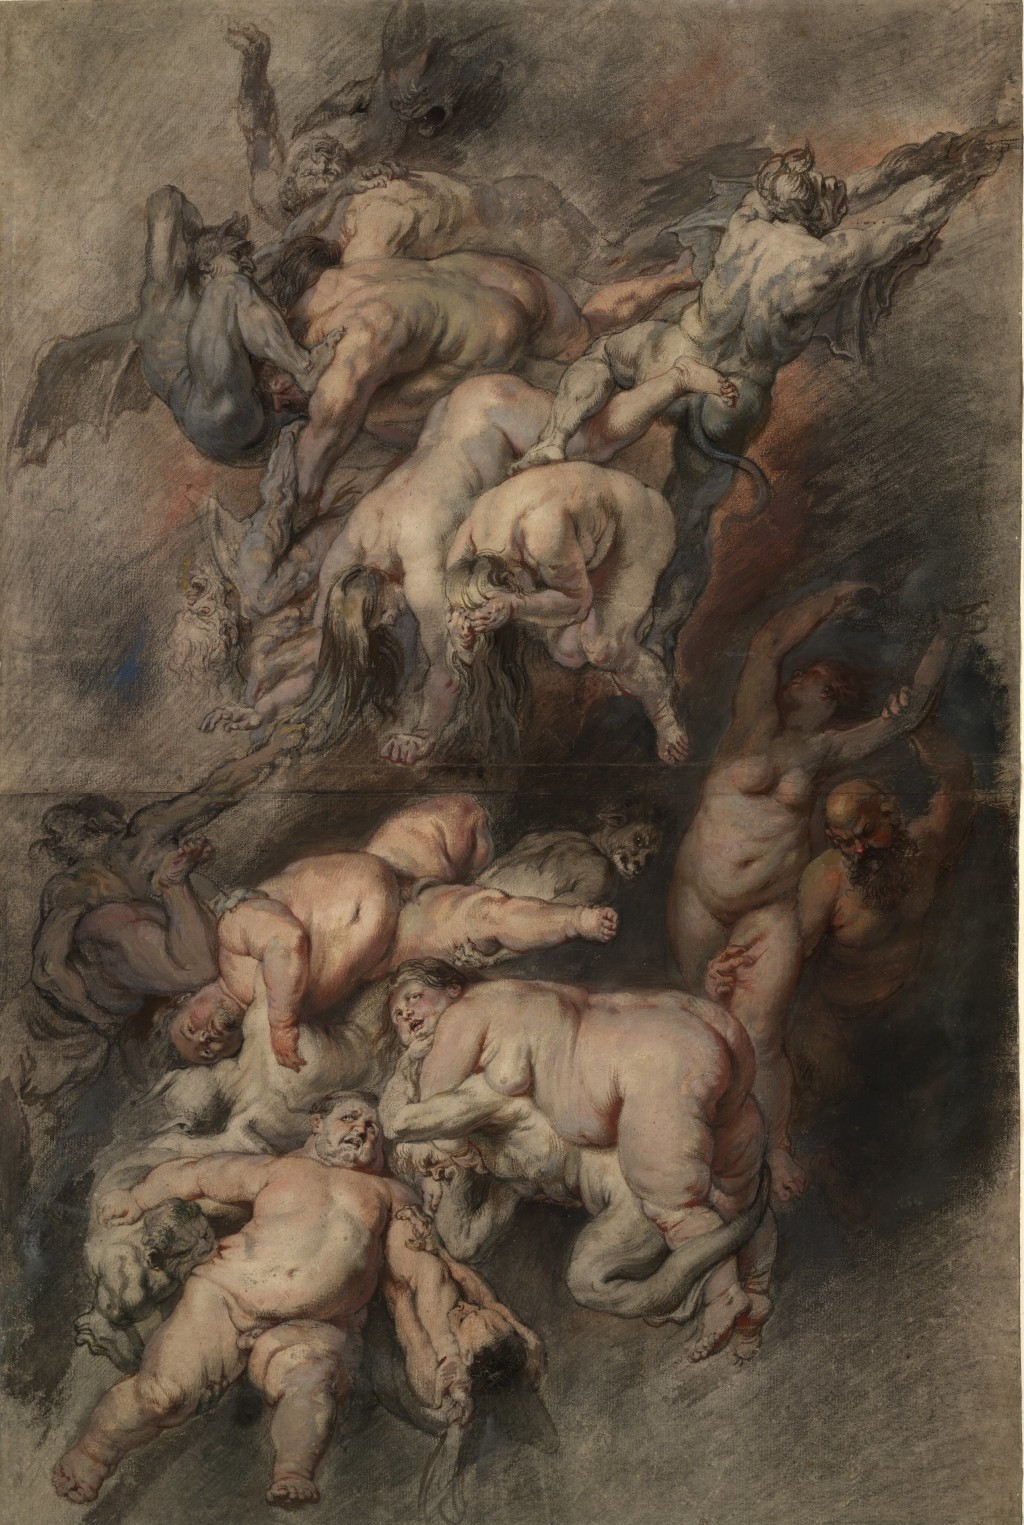 Peter Paul Rubens -Study for the Fall of the Damned, c.1614-18